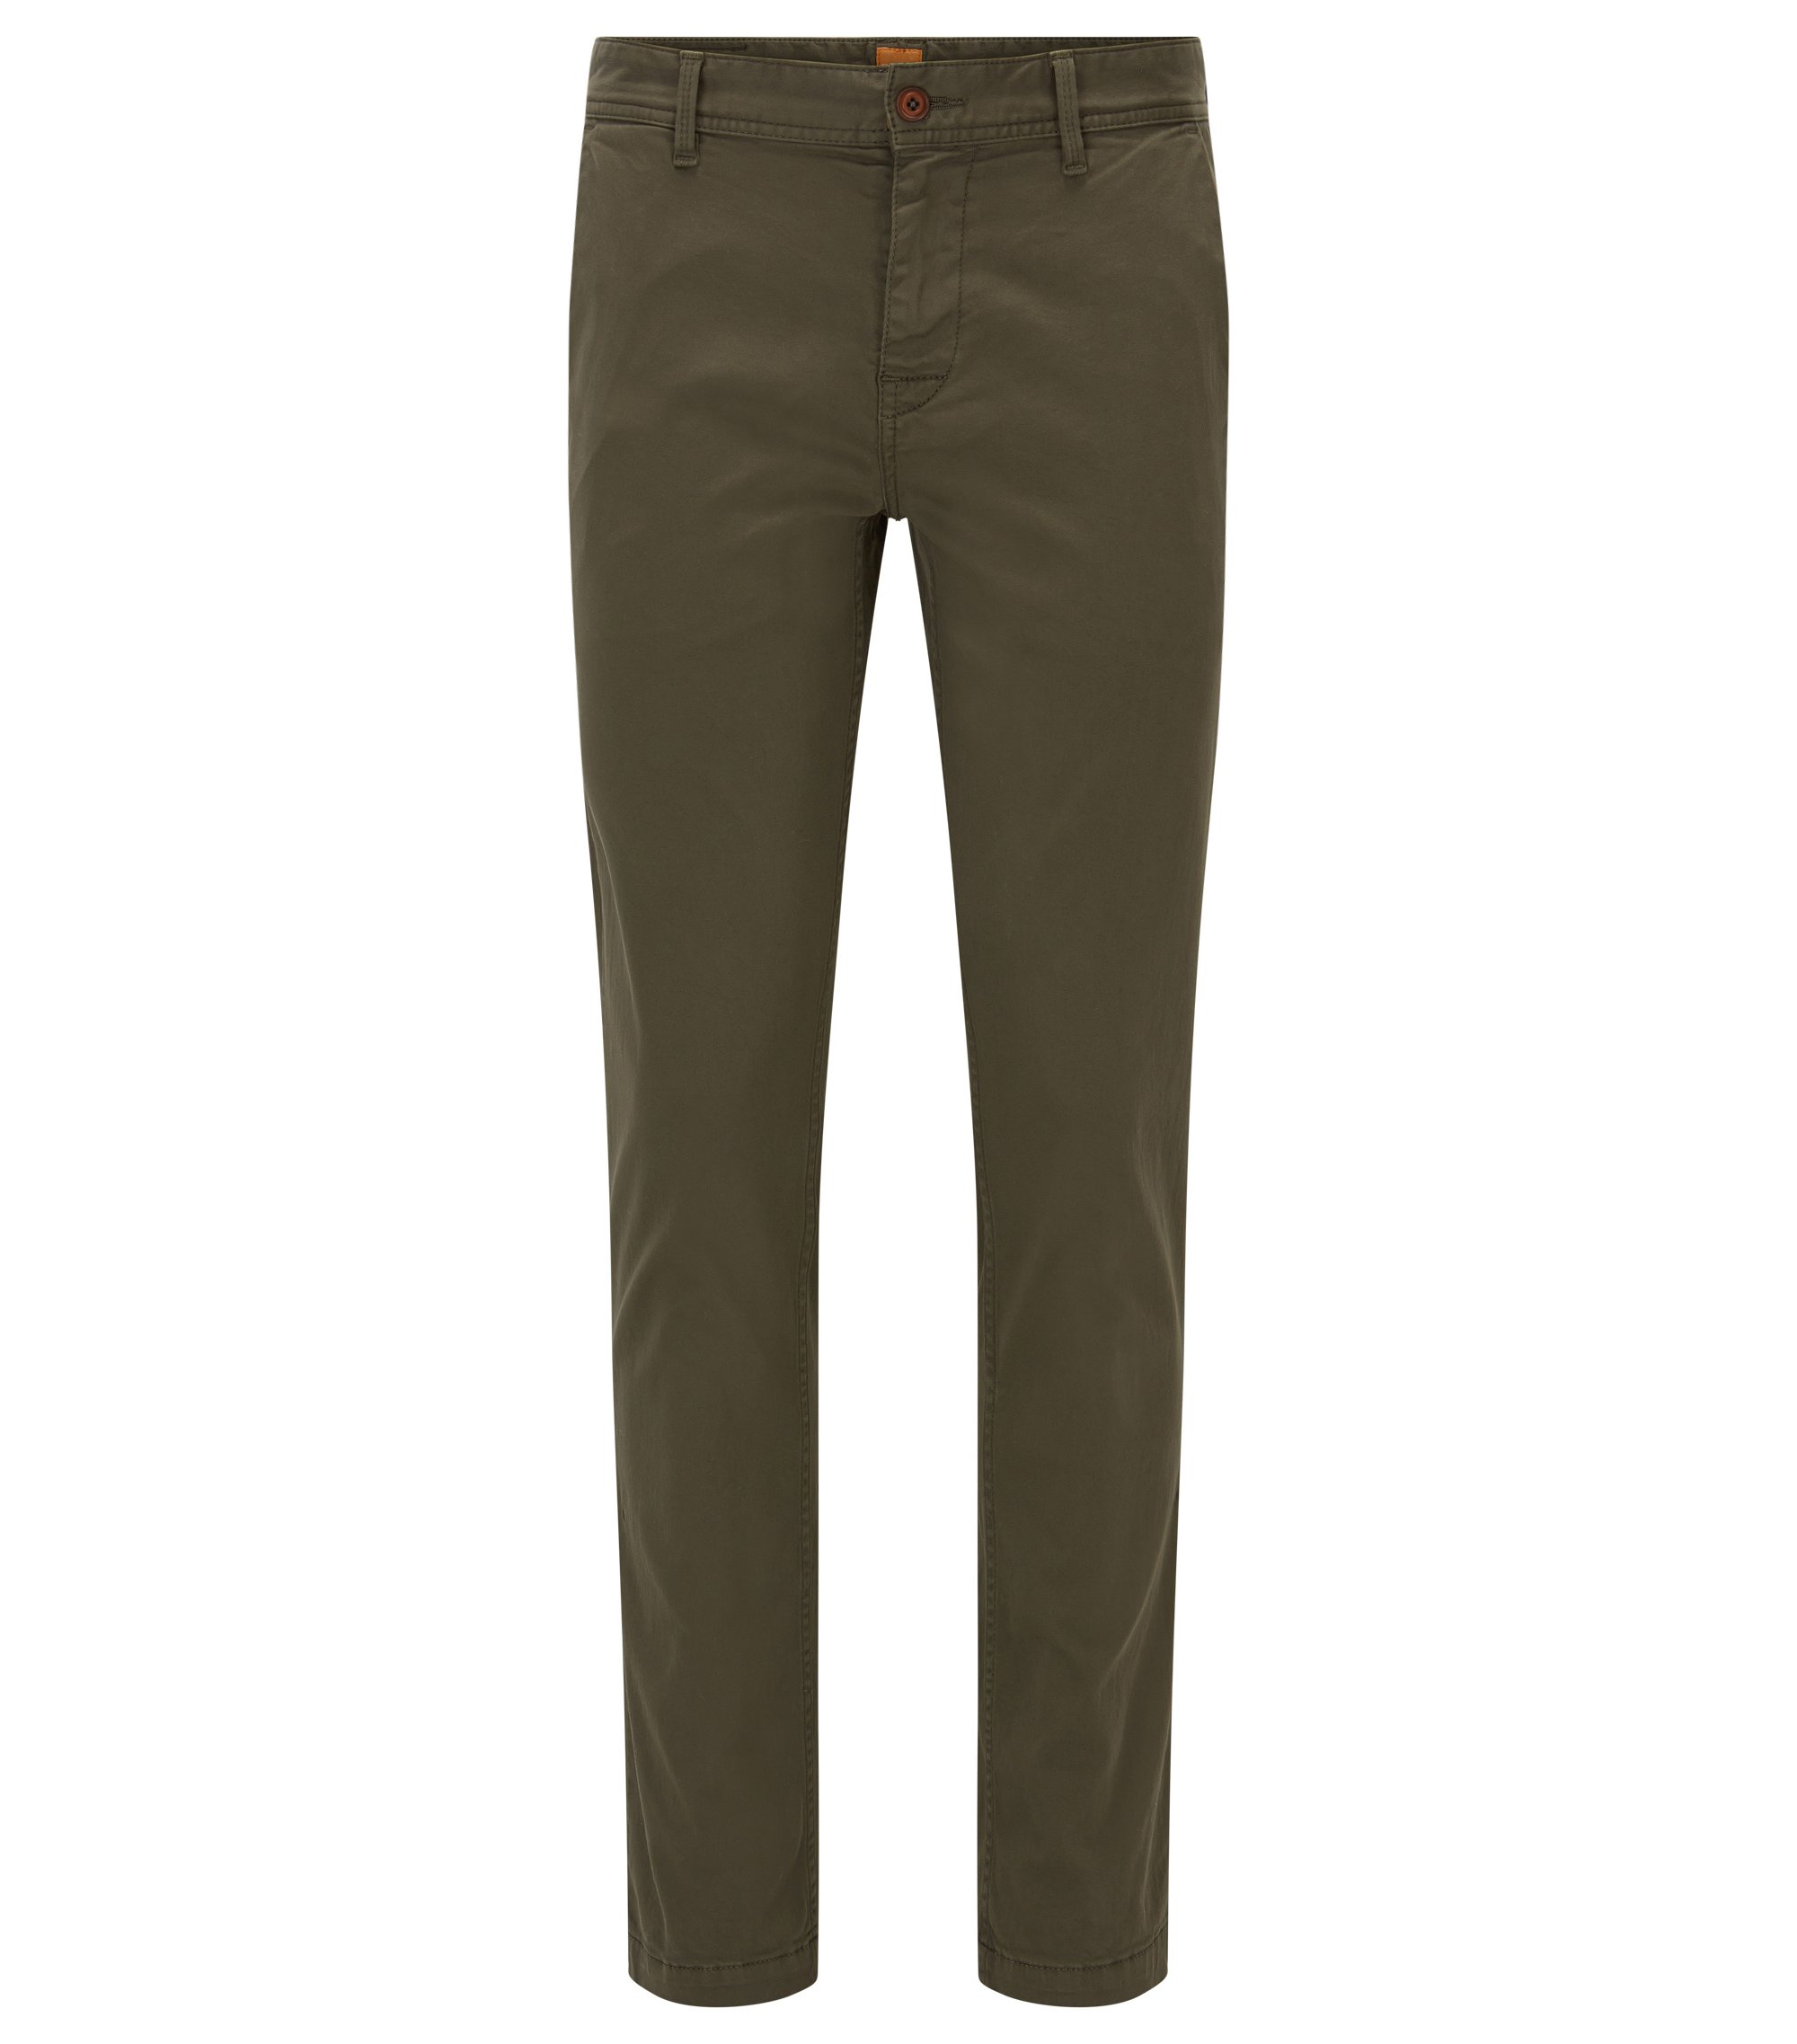 Stretch Cotton Chino Pants, Slim Fit | Schino Slim D, Dark Green